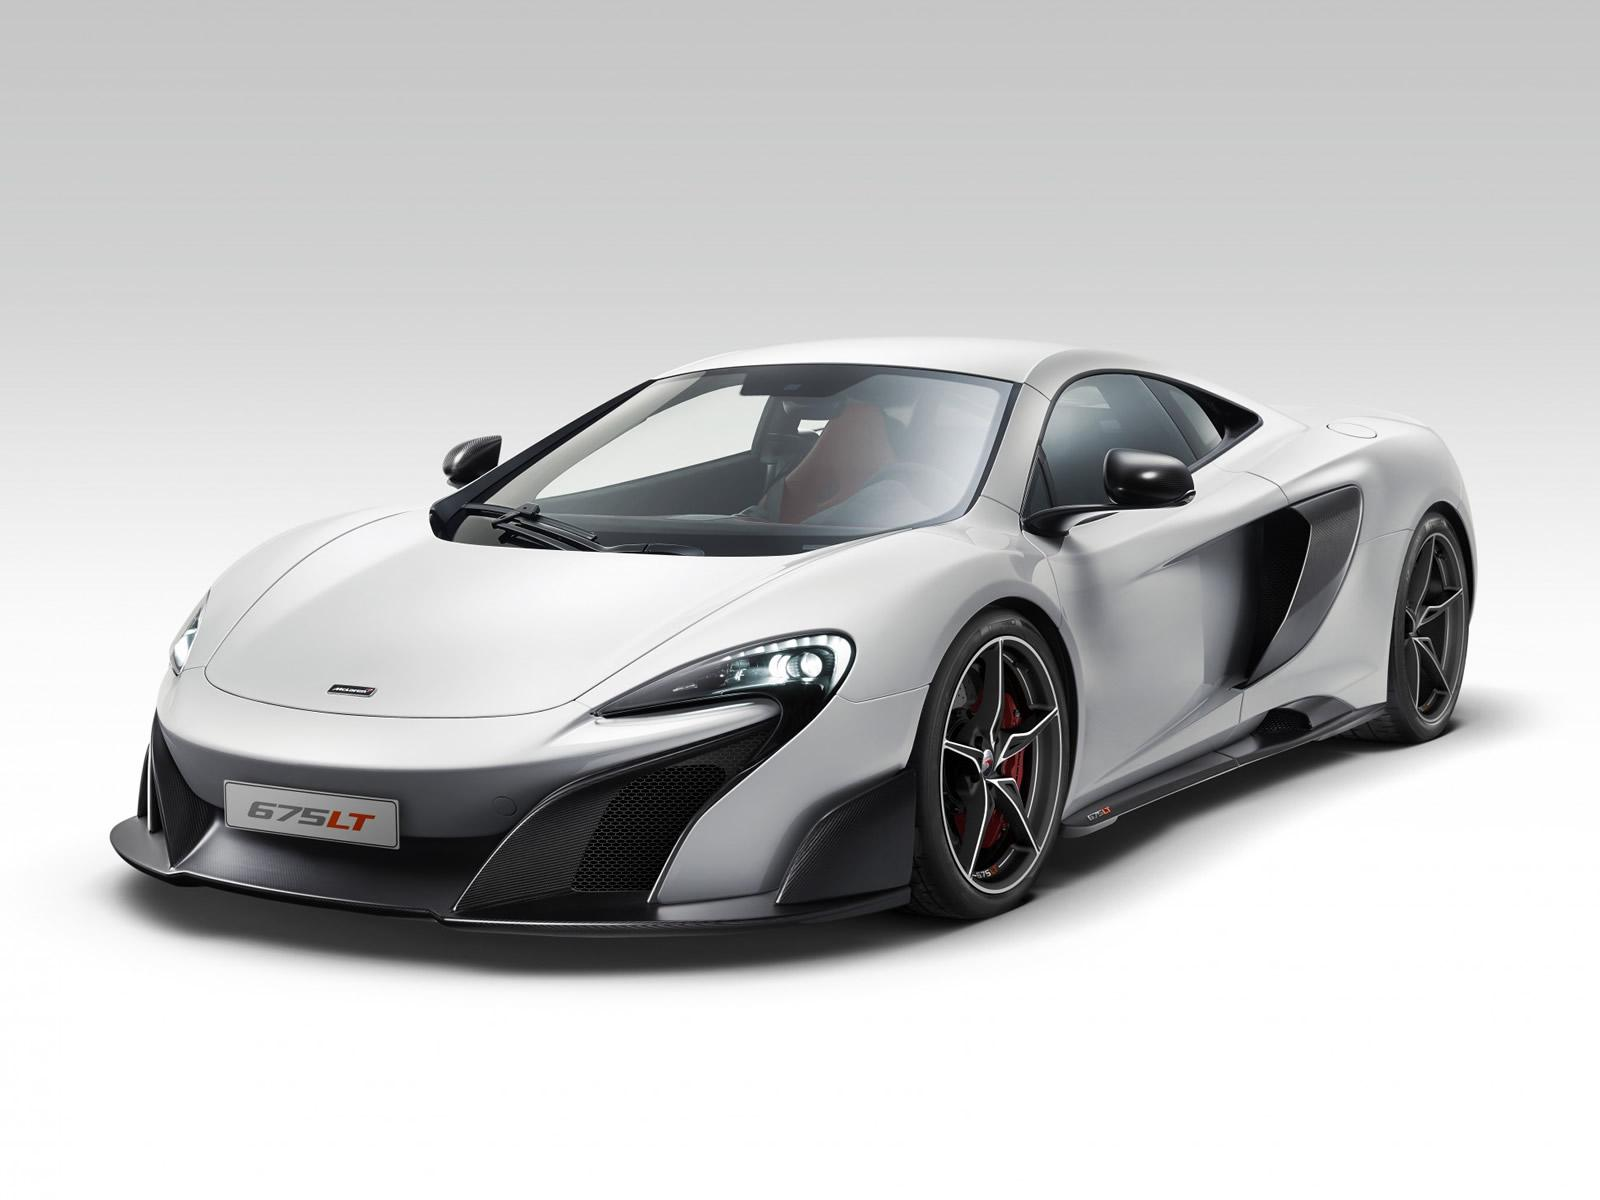 MCLAREN 675LT LOUD FIRST RIDE 3